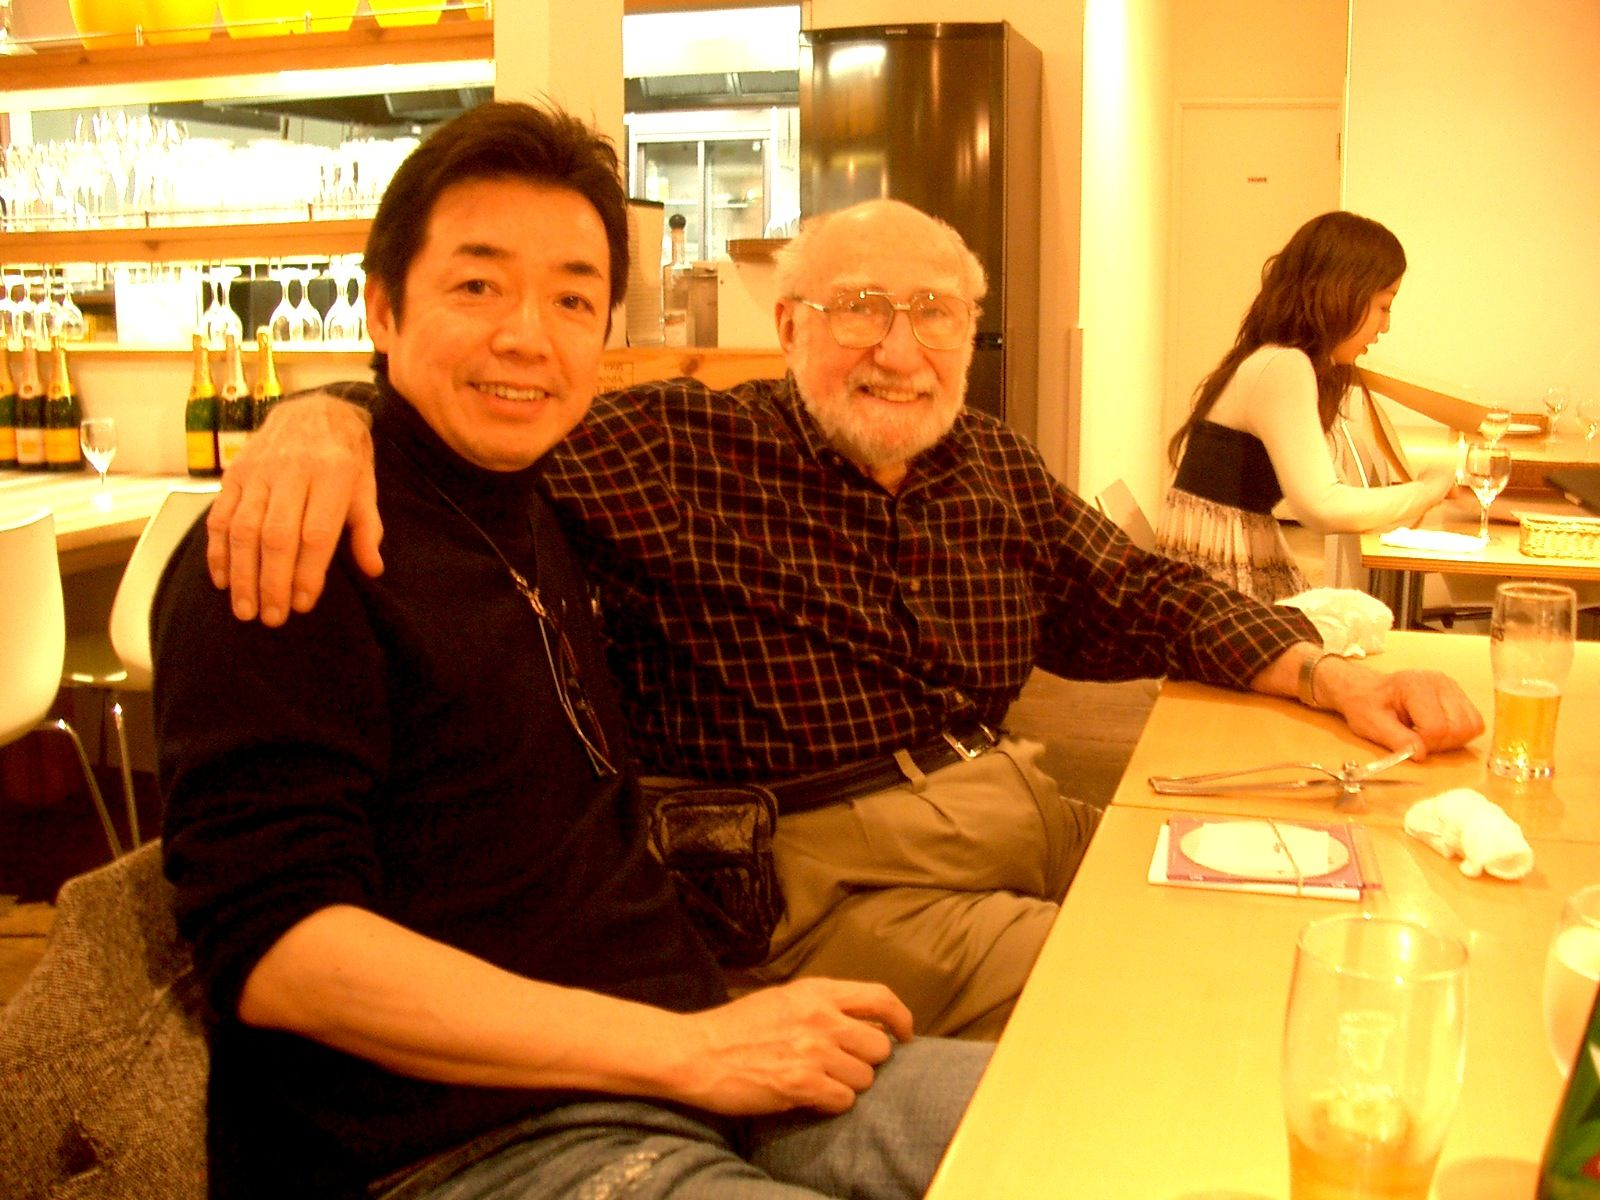 #Harry #Wachs visiting us in Japan #vision #therapy